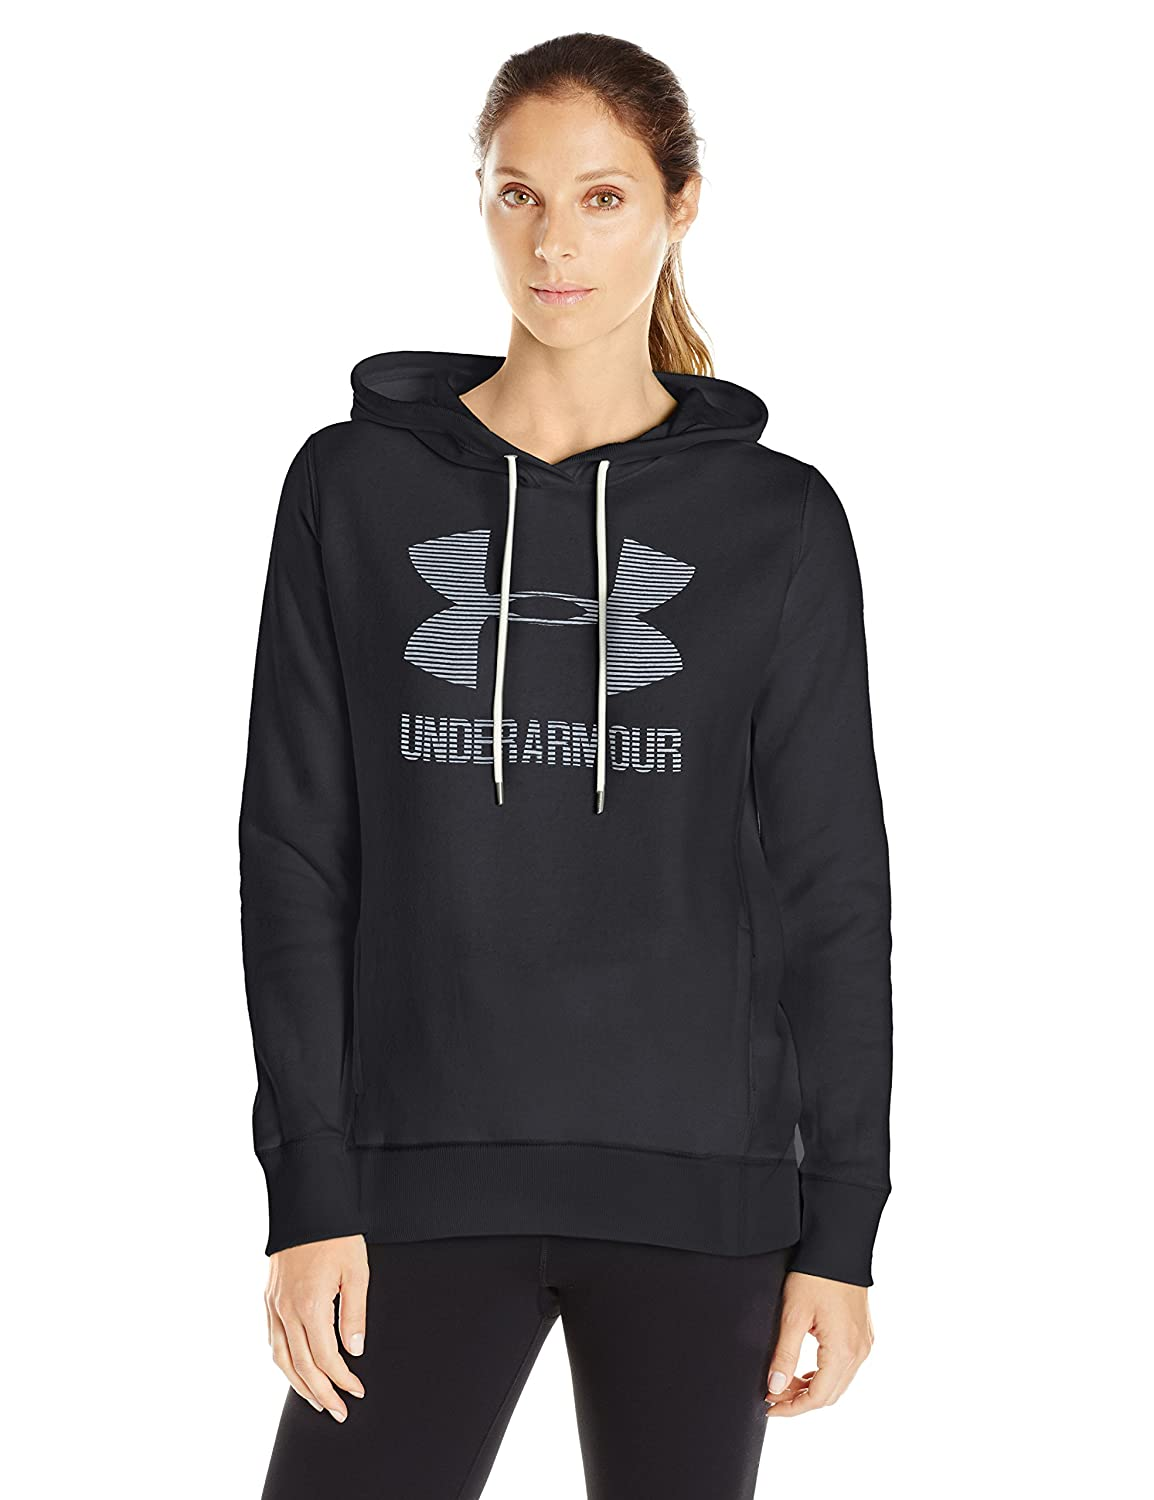 Under Armour Women's Favorite Fleece Sportstyle Hoodie Under Armour Apparel 1295097